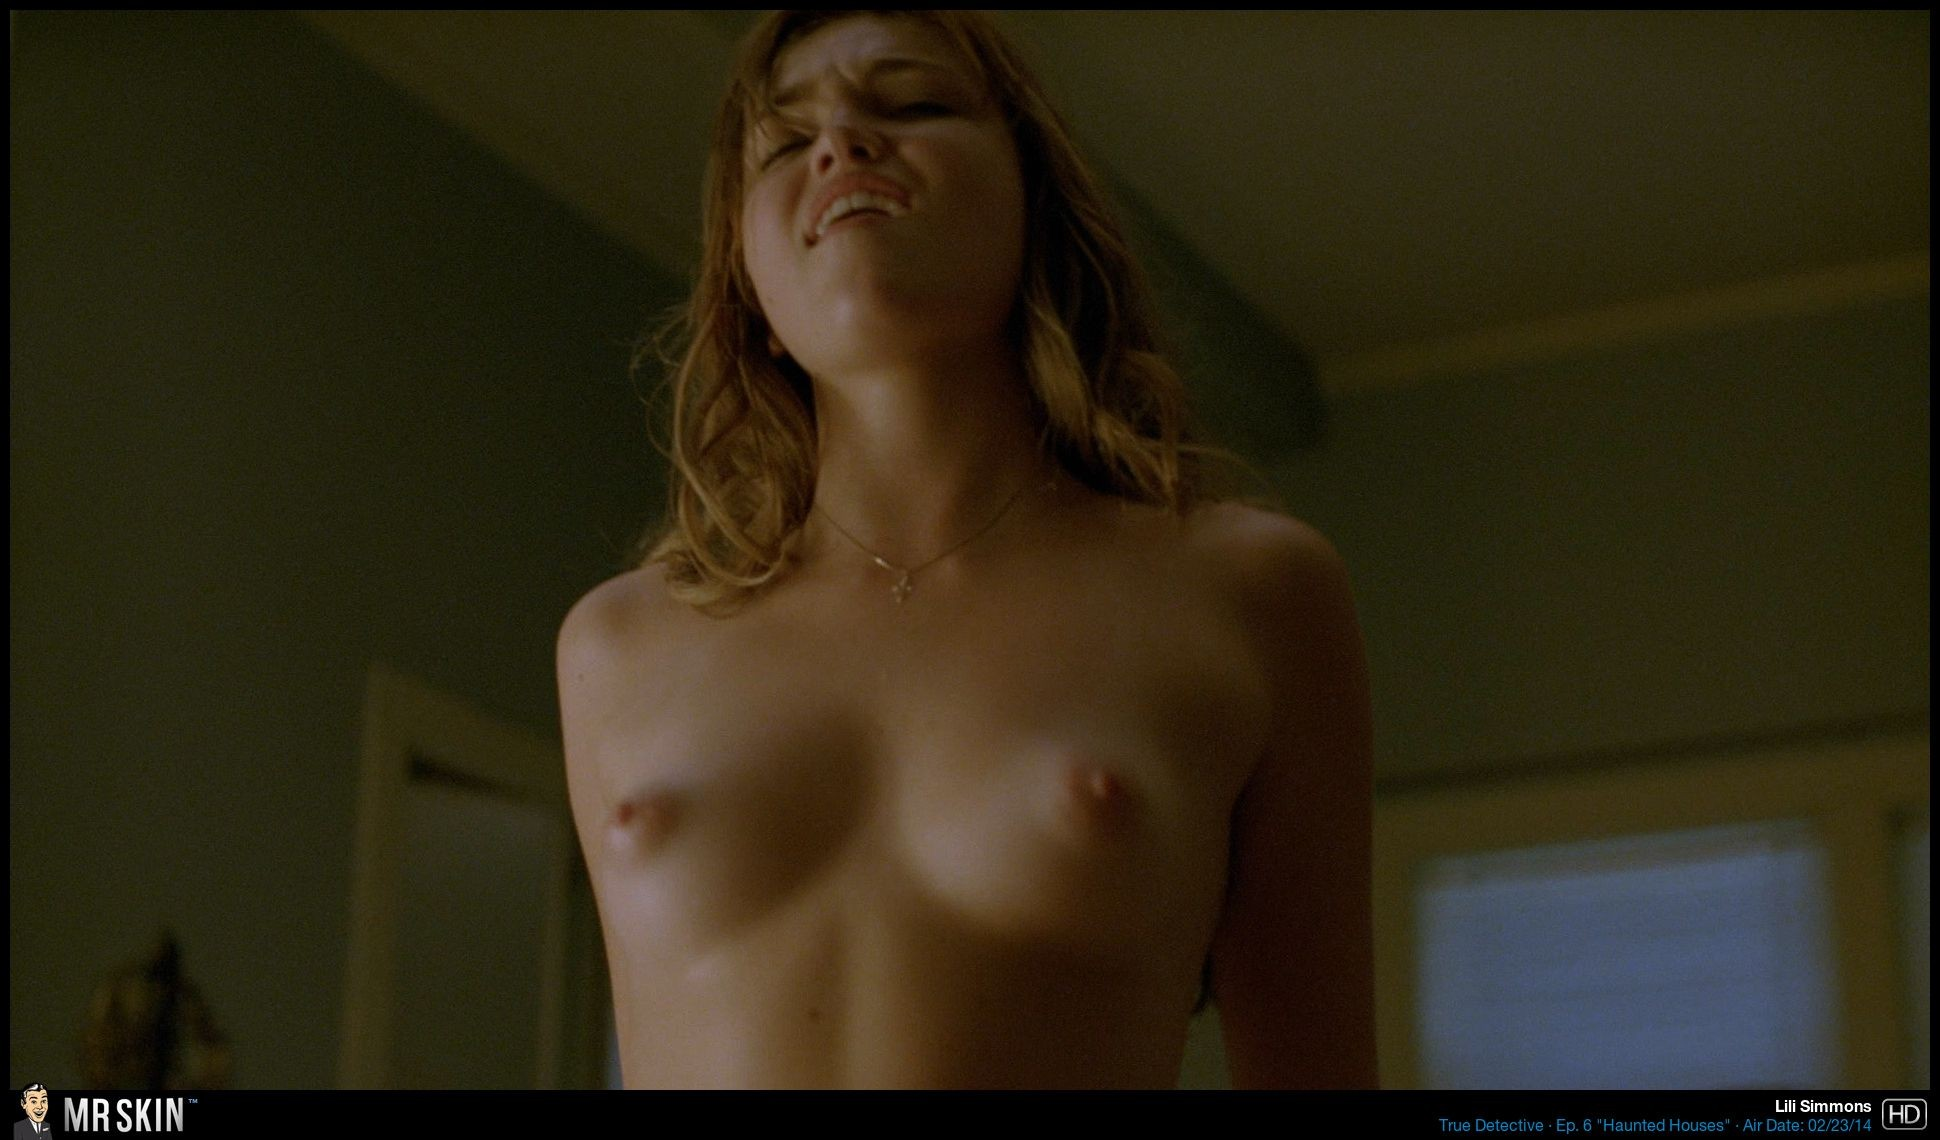 Lili Simmons Nude - Page 3 Pictures, Naked, Oops, Topless -5704